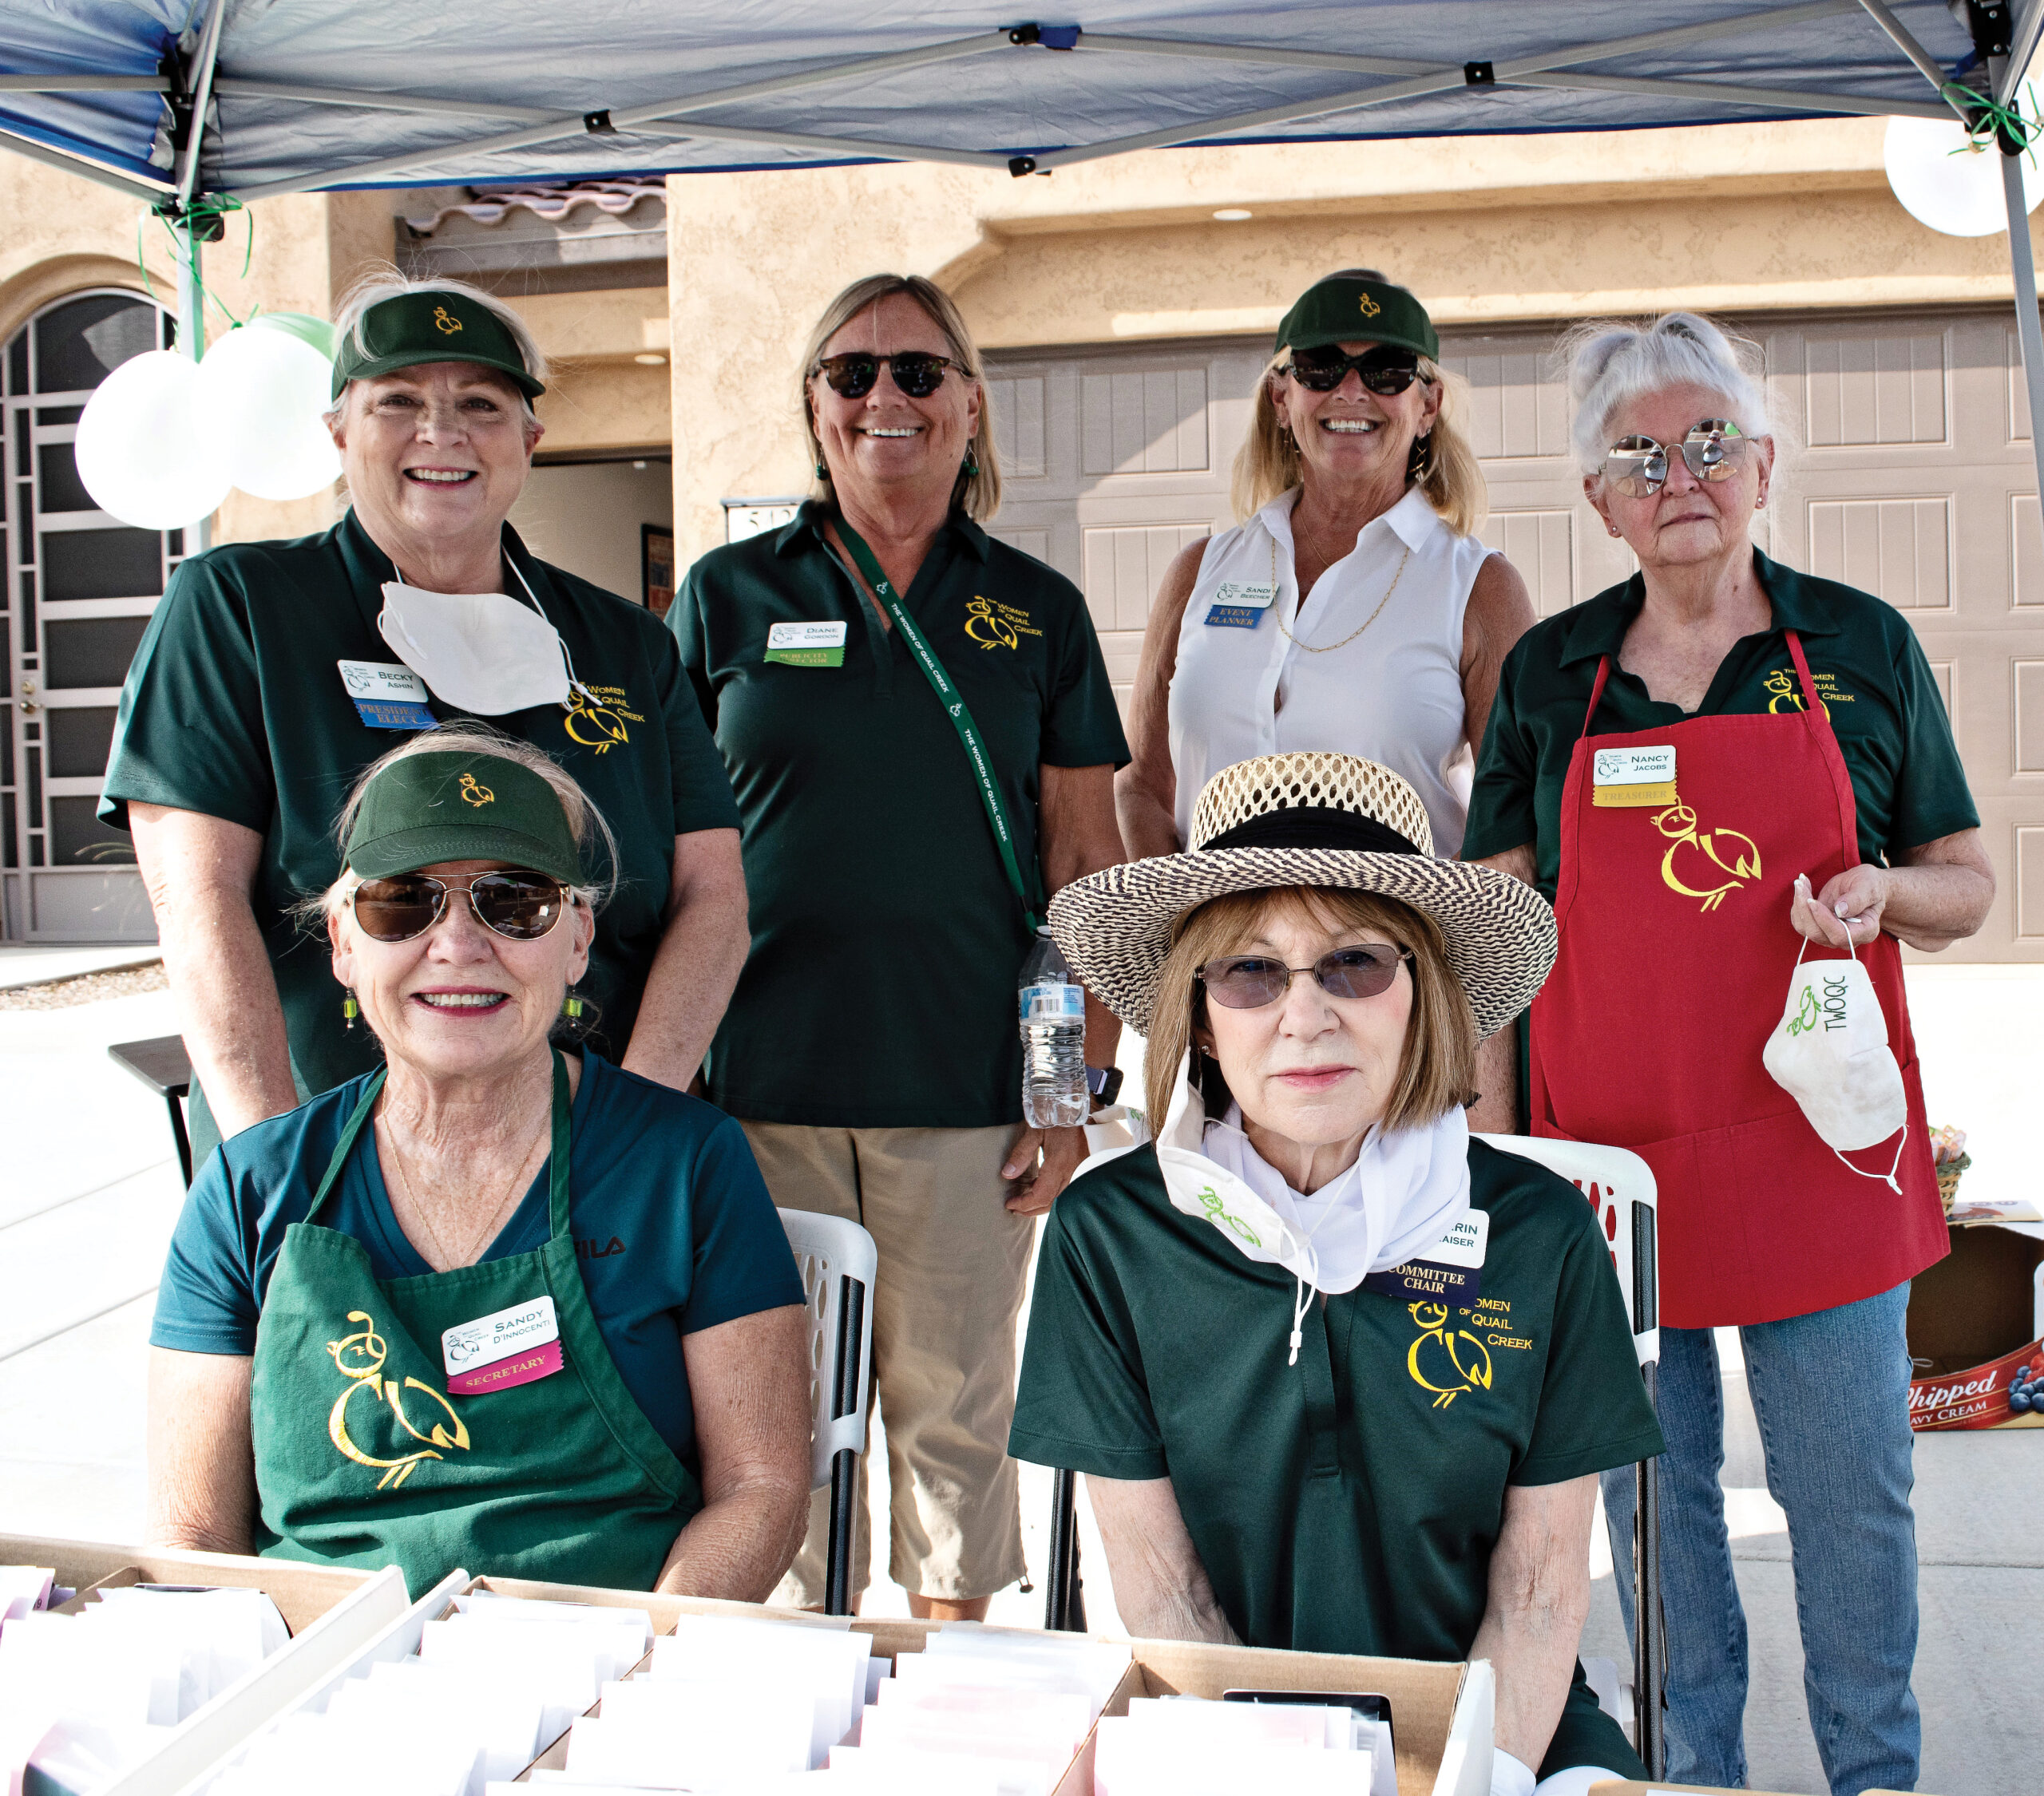 Six women who volunteered at one of the locations. Back: Becky Ashin, Diane Gordon, Sandi Beecher, and Nancy Jacobs. Front: Sandy Dinnocenti and Carin Kaiser.